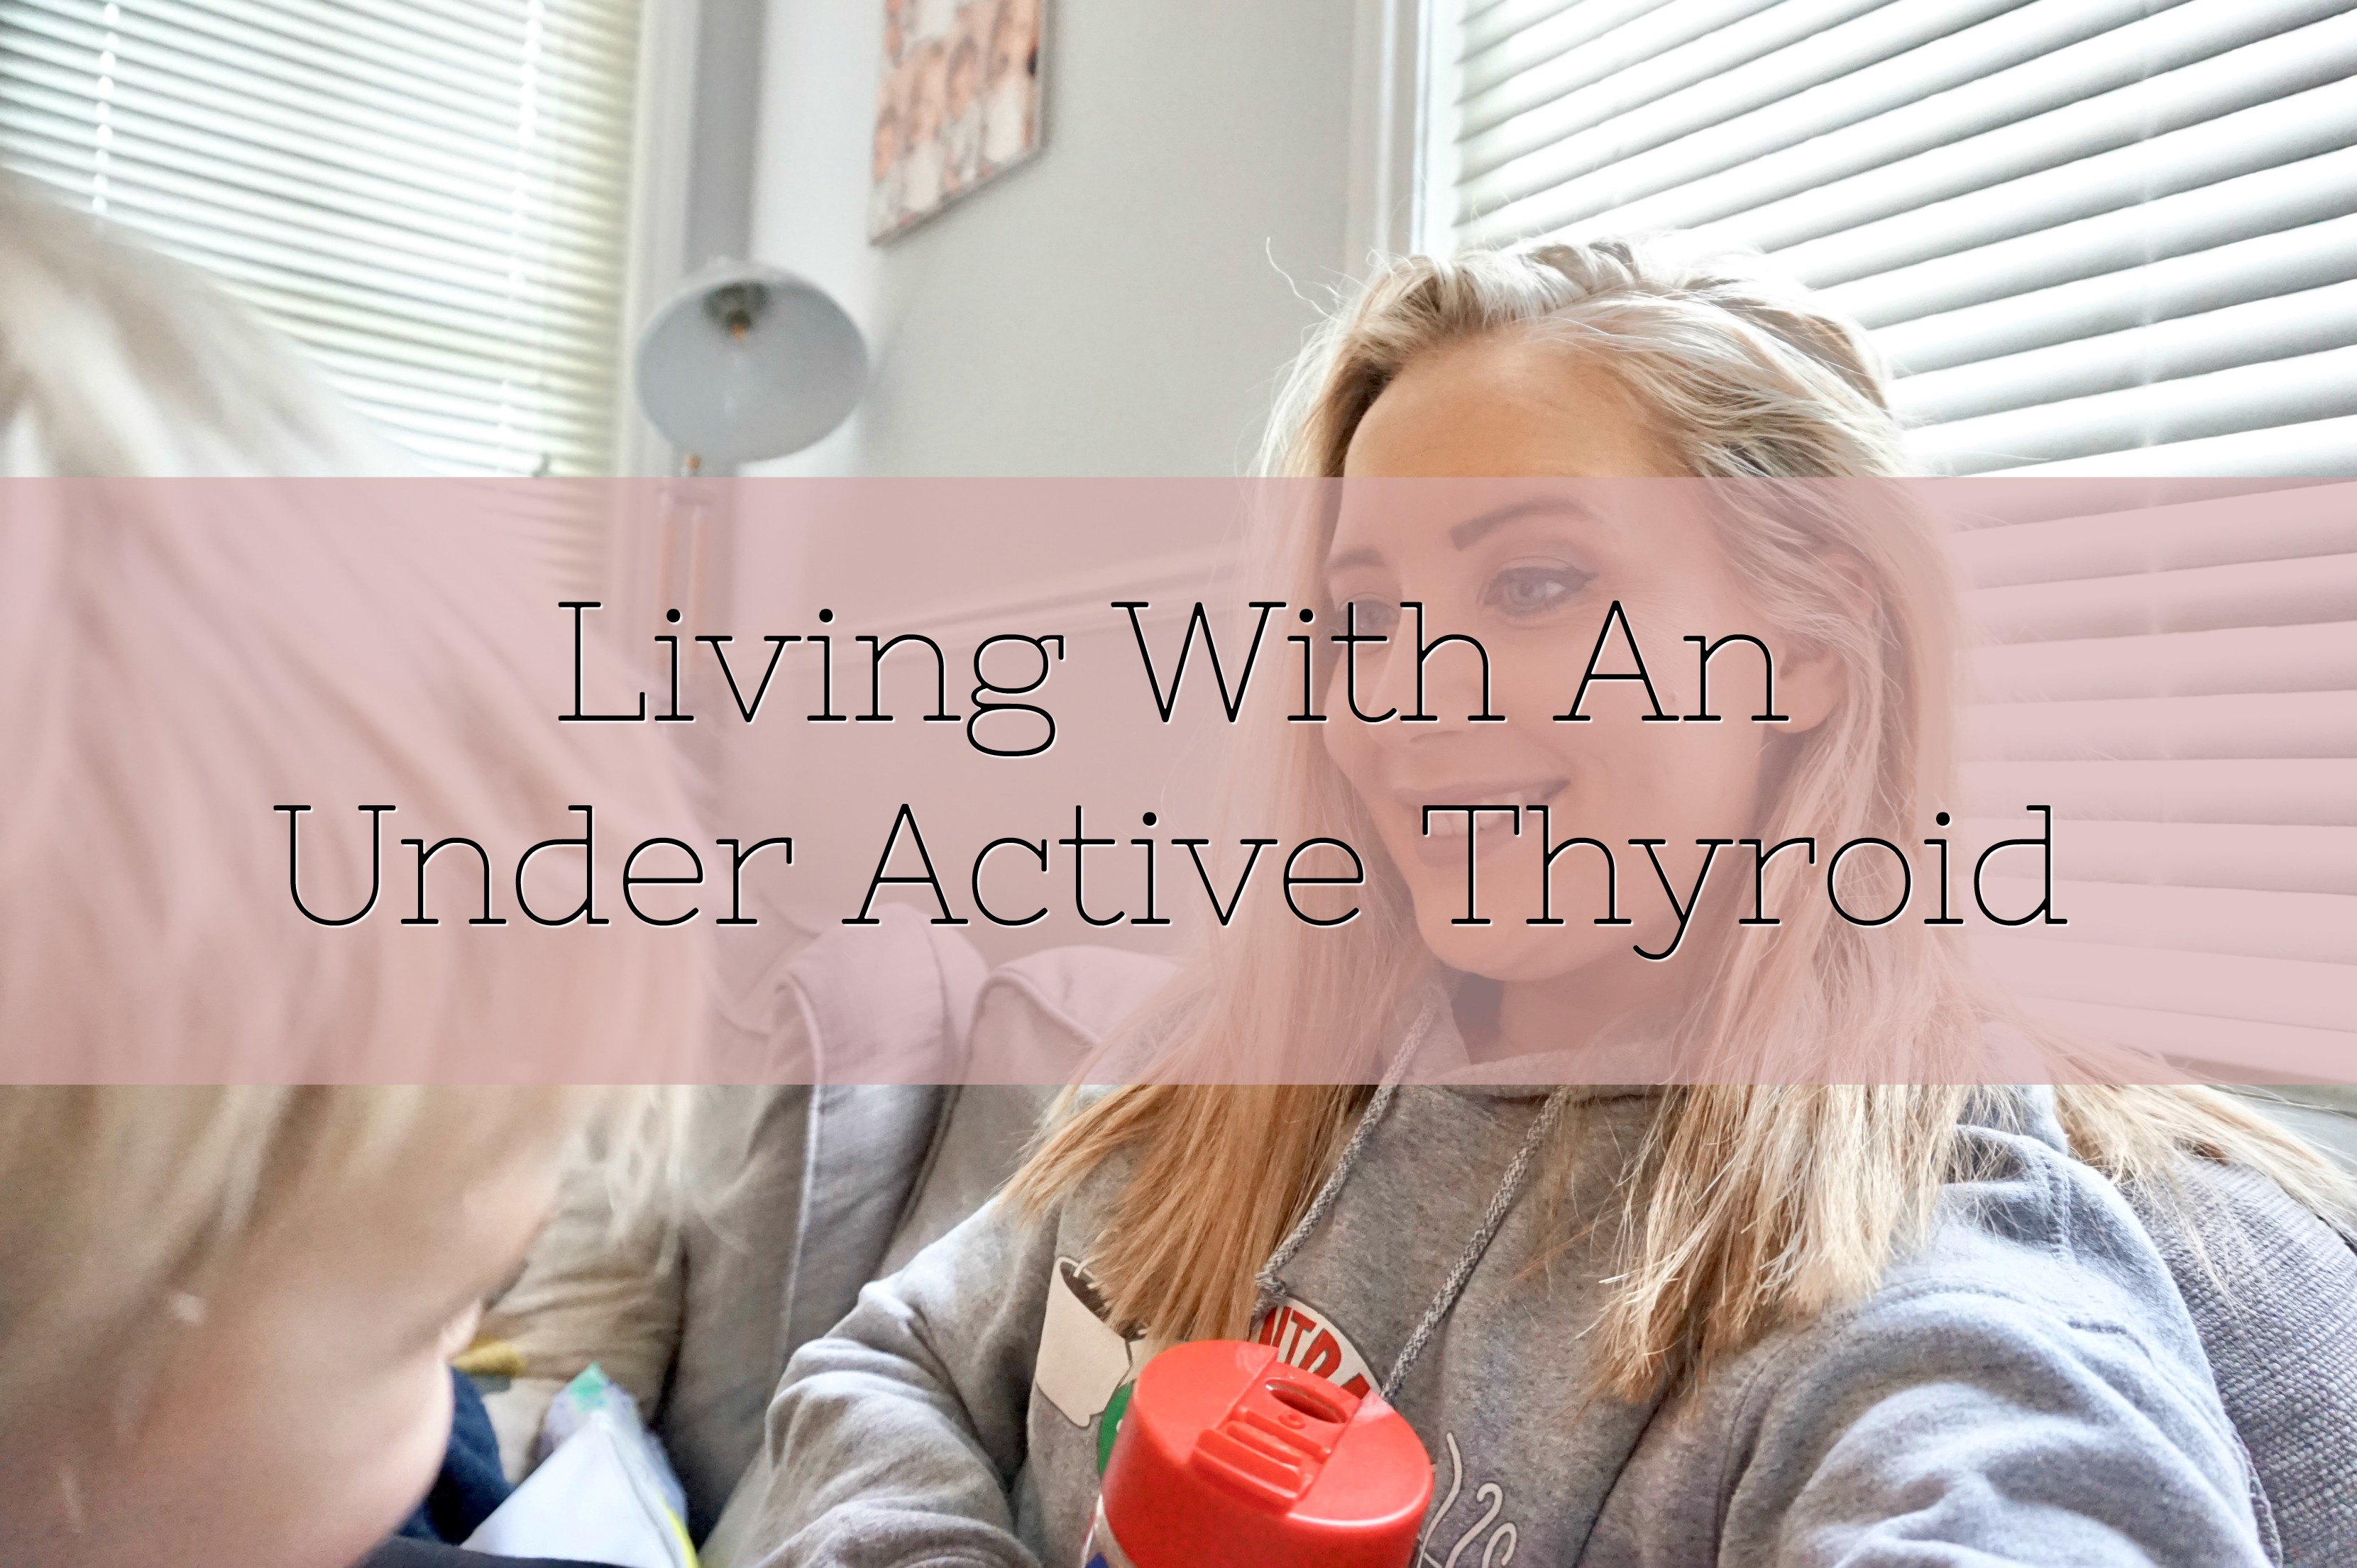 so shape challenge under active thyroid title